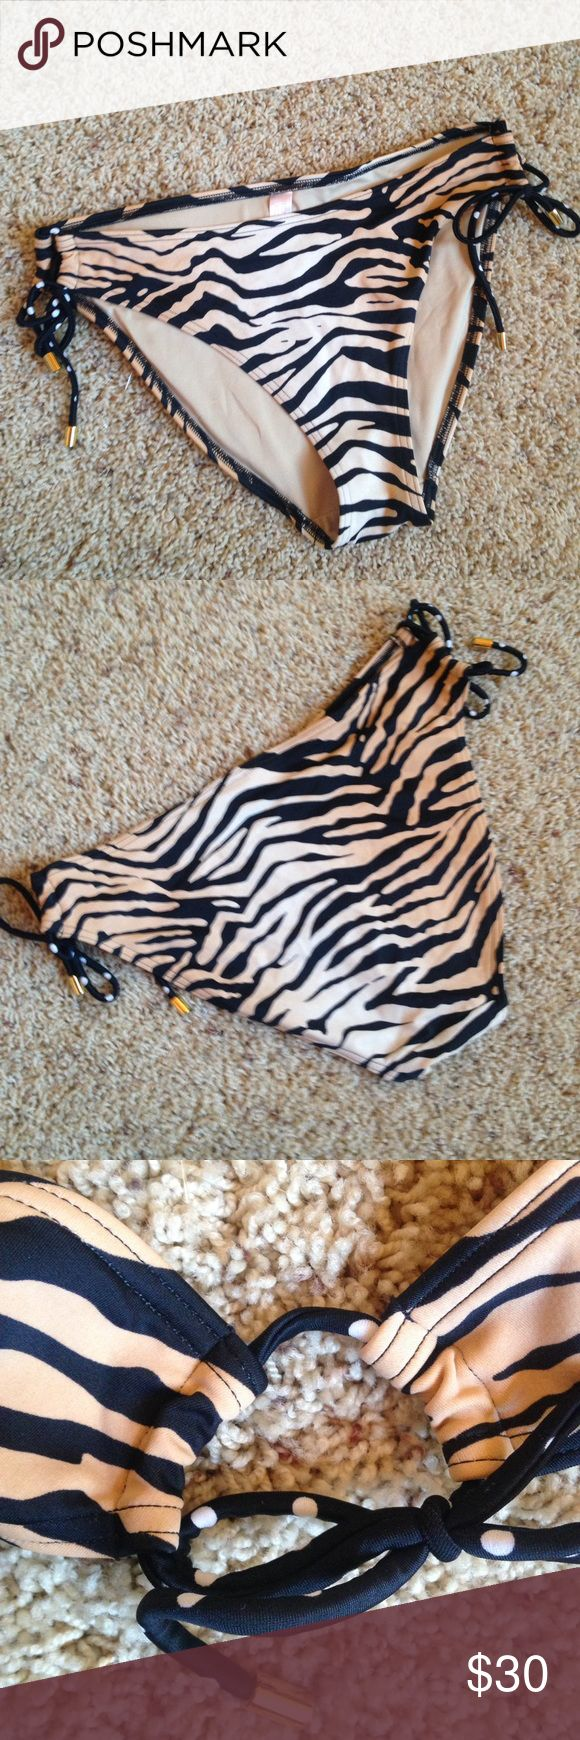 Victoria's Secret Animal Print Bikini Bottom, M Great condition Bikini Bottom by Victoria's Secret. Ties on the size with black and white polka dot ties. Size Medium. Slight markings left by the hygienic lining (pictured). Matching Top also listed. Victoria's Secret Swim Bikinis